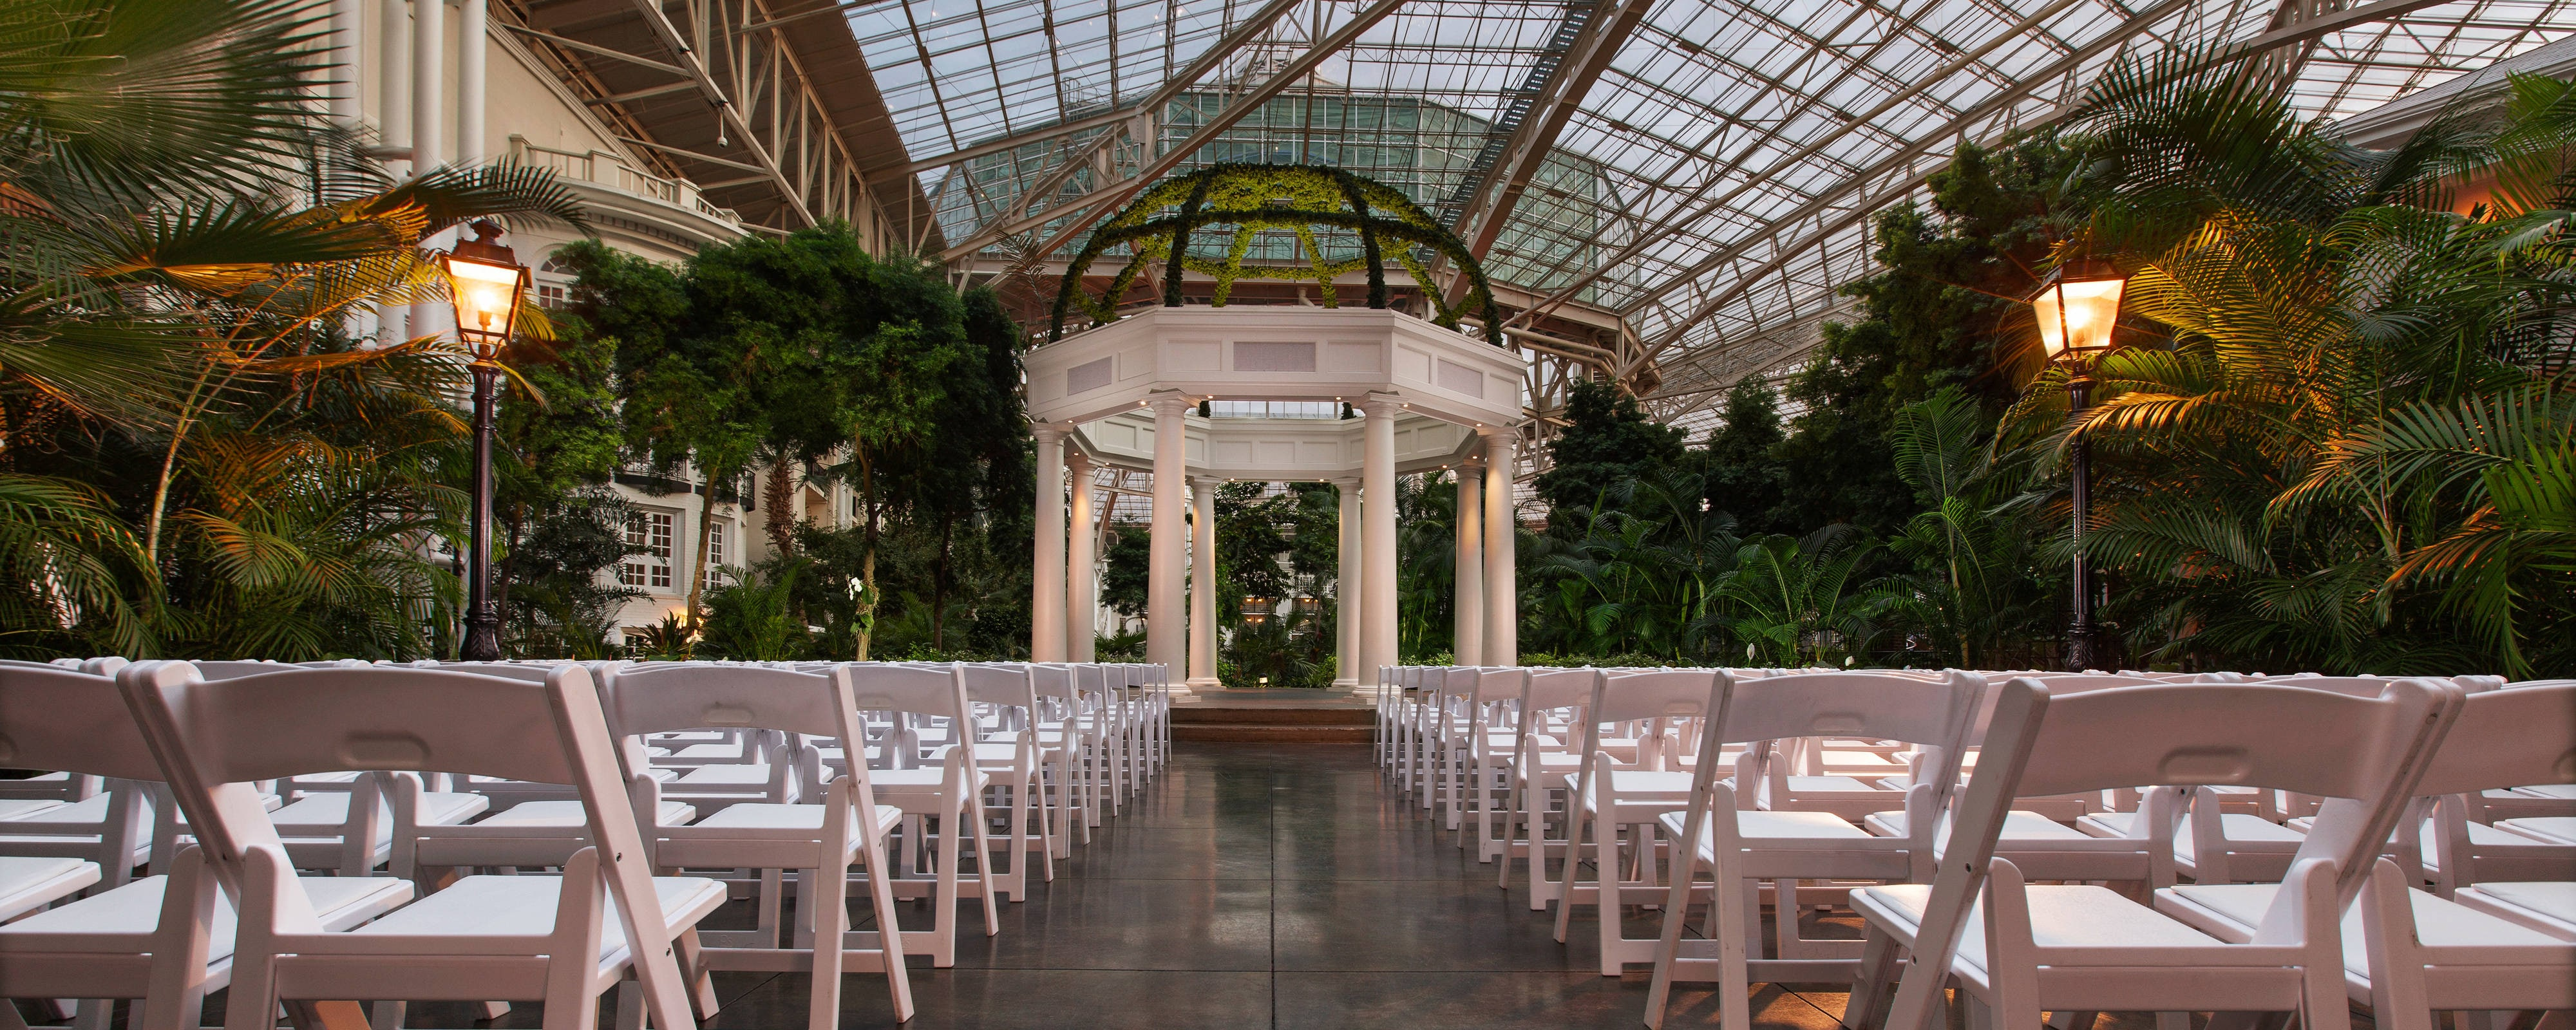 Wedding Venues In Nashville Tennessee